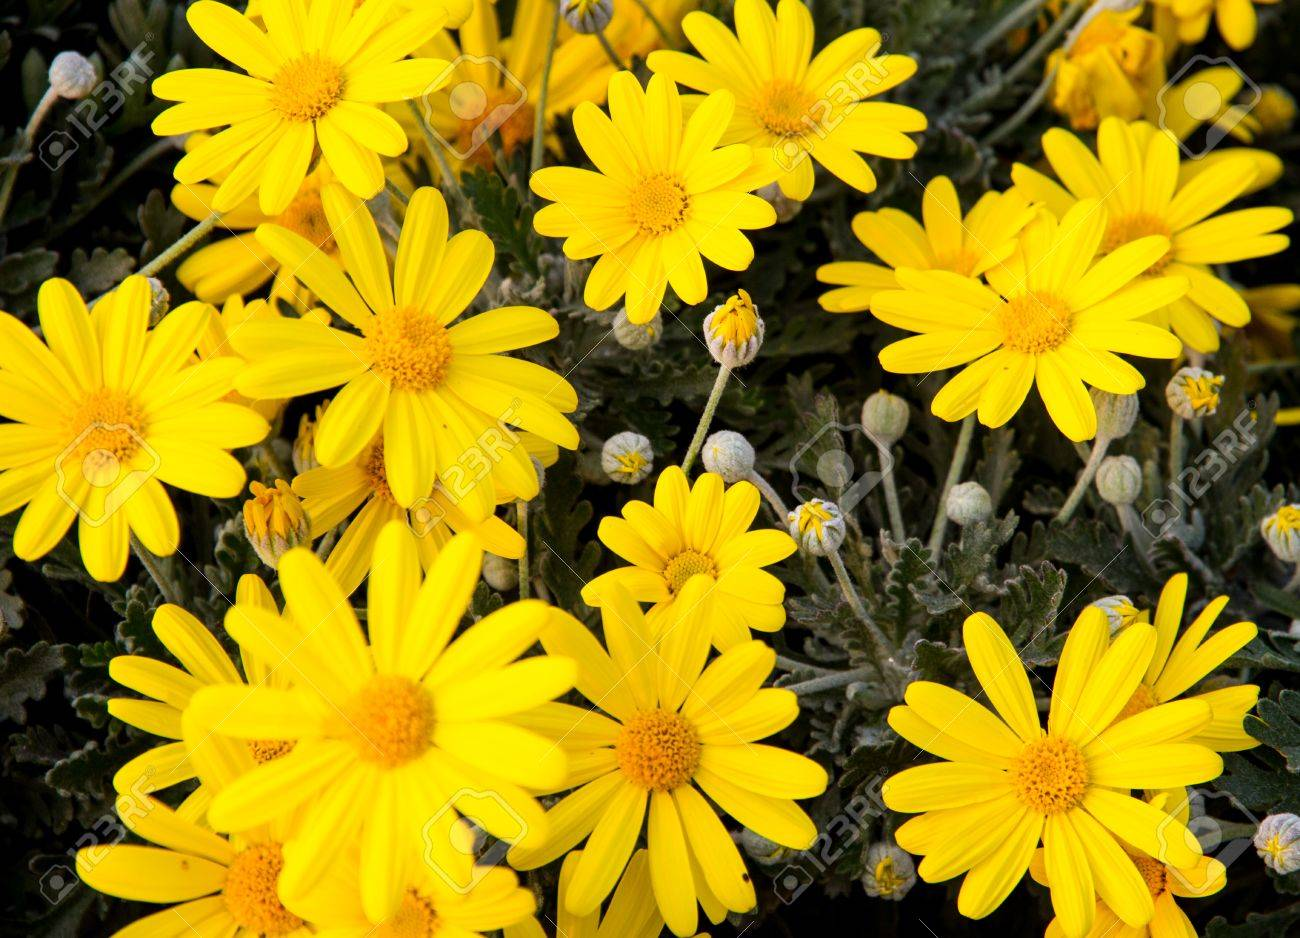 Yellow flowers and daisies from the florist for sale stock photo stock photo yellow flowers and daisies from the florist for sale izmirmasajfo Images